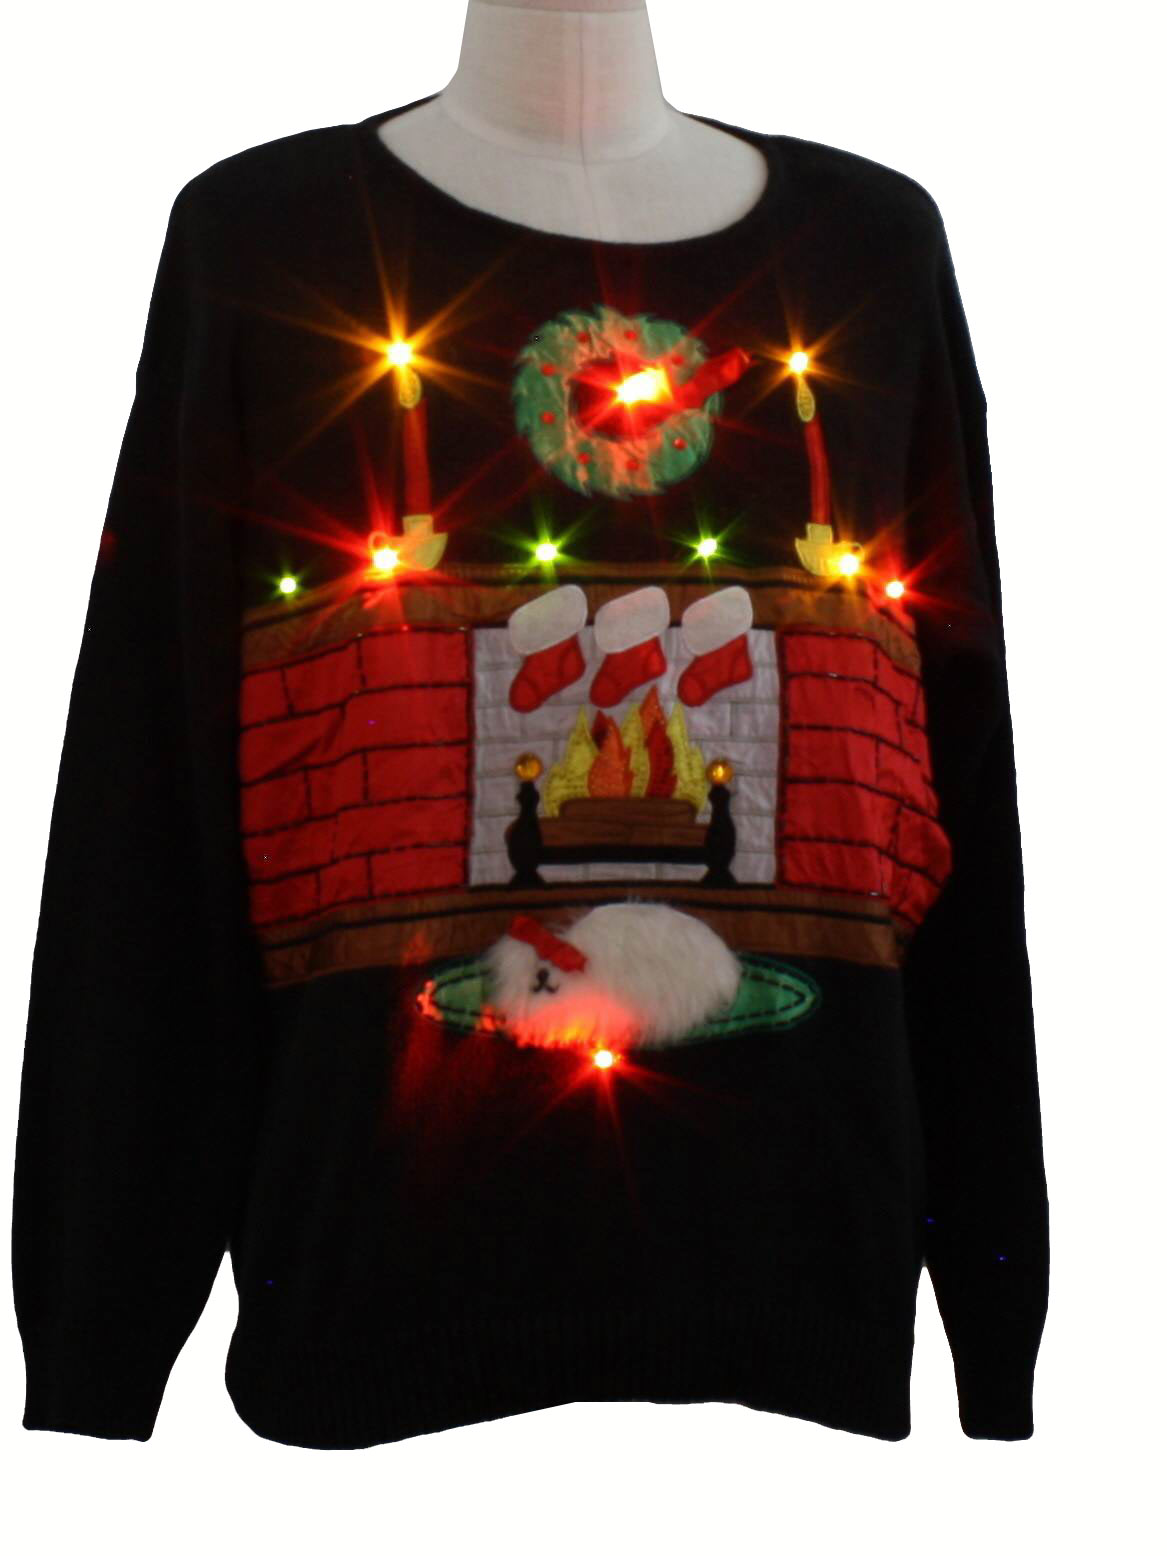 Lightup Ugly Christmas Sweater Work In Progress Unisex Black Background Ramie Cotton Blend